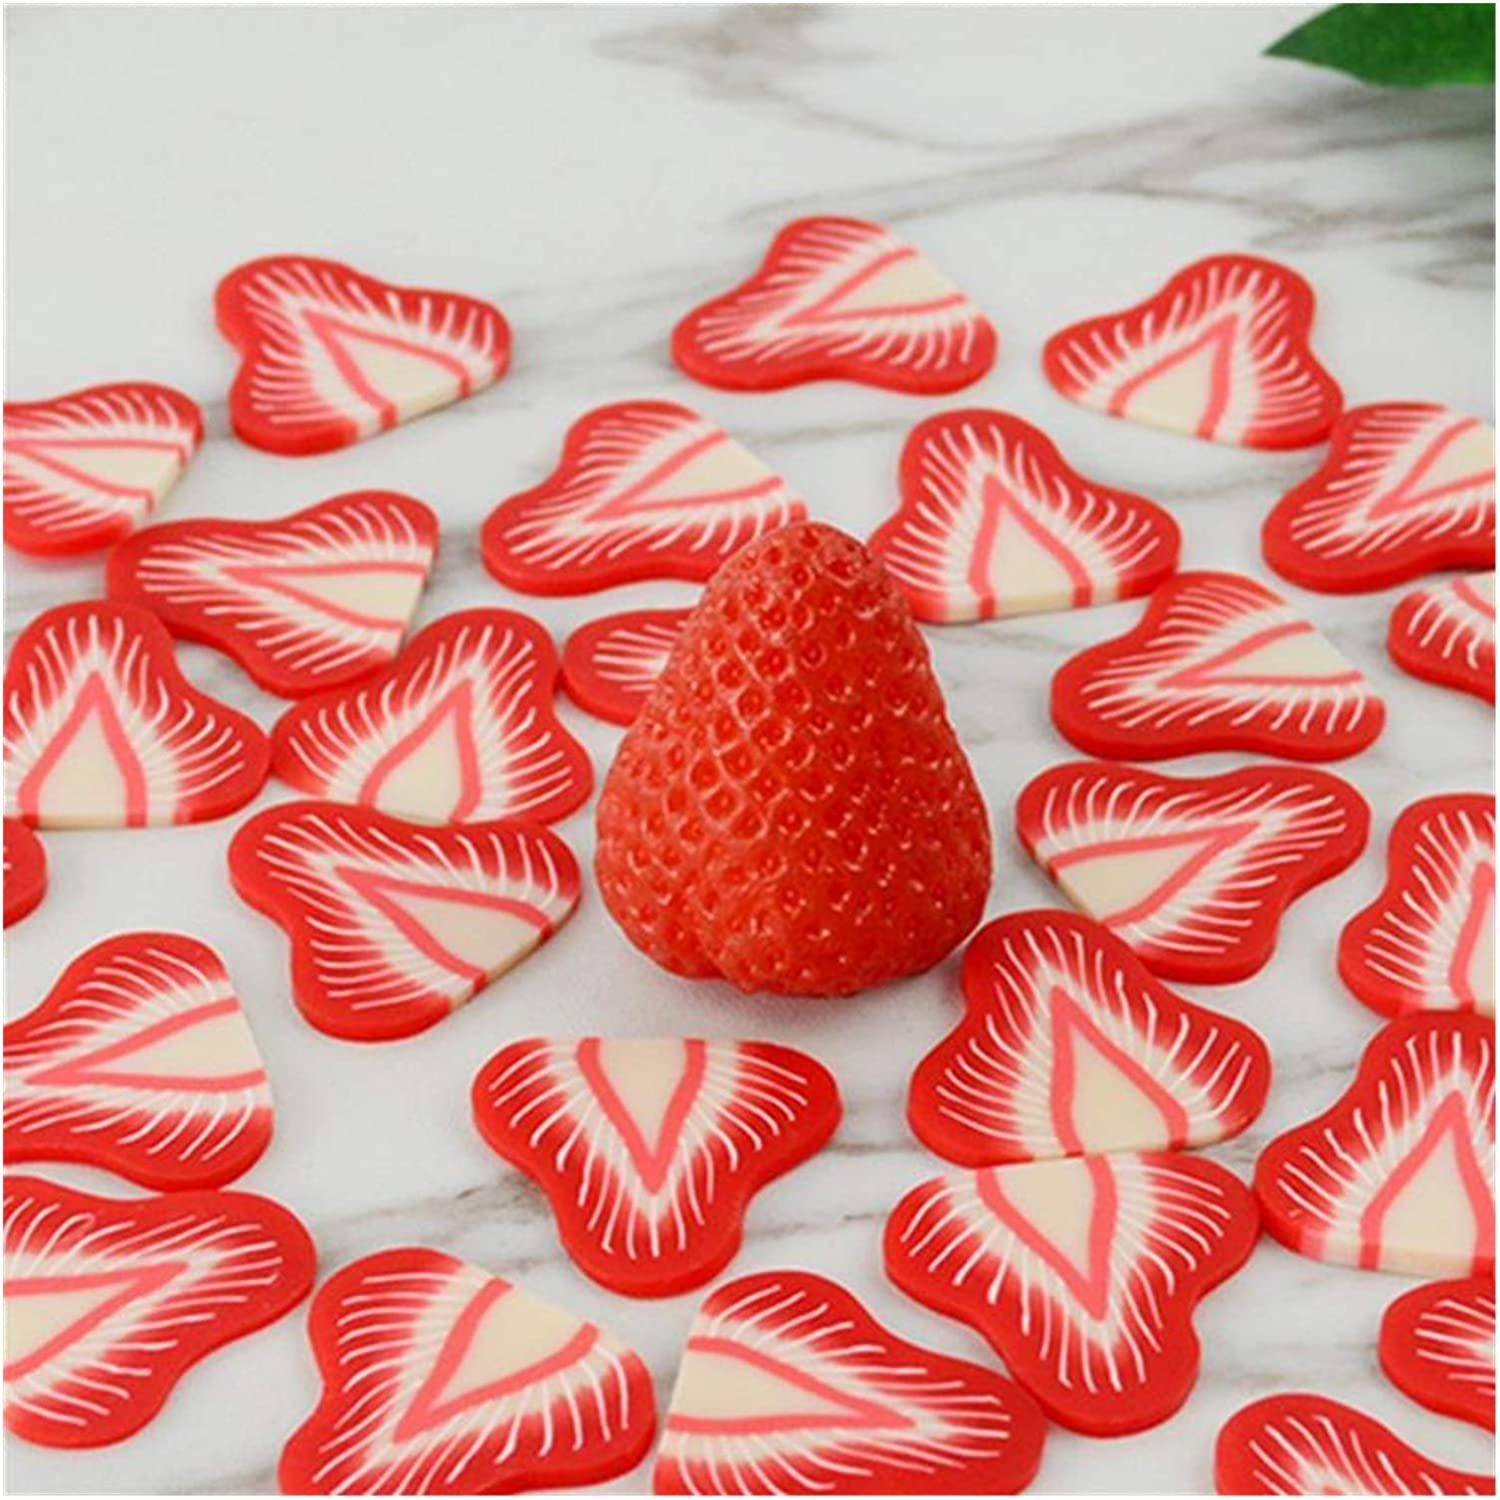 JSJJEDC Artificial Fruit 20PCS Don't miss the campaign Simulated Strawb Time sale